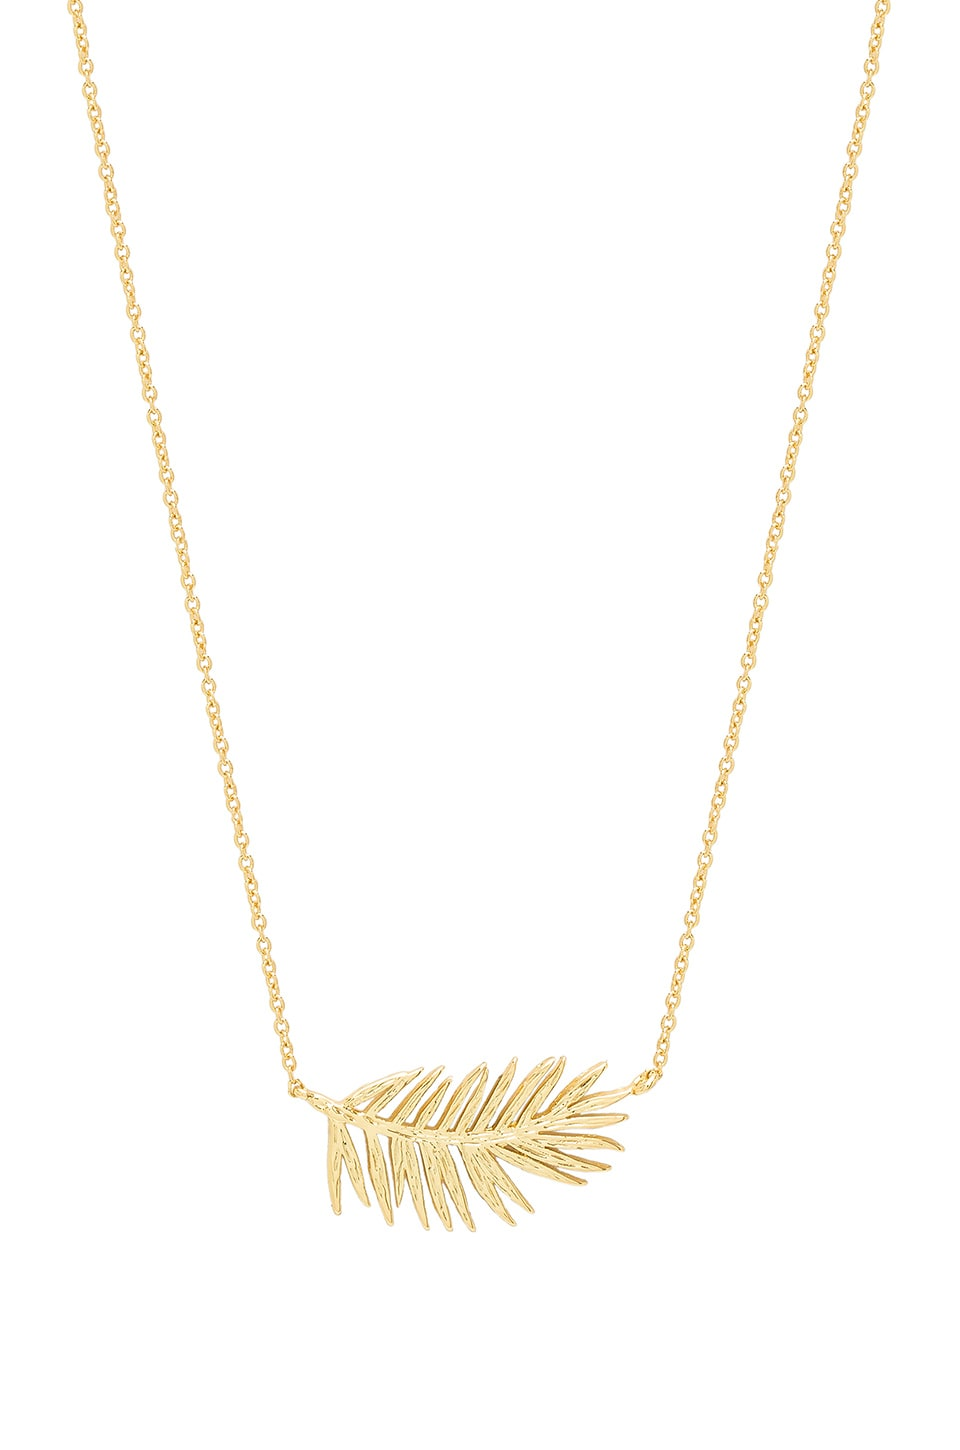 PALM ADJUSTABLE NECKLACE